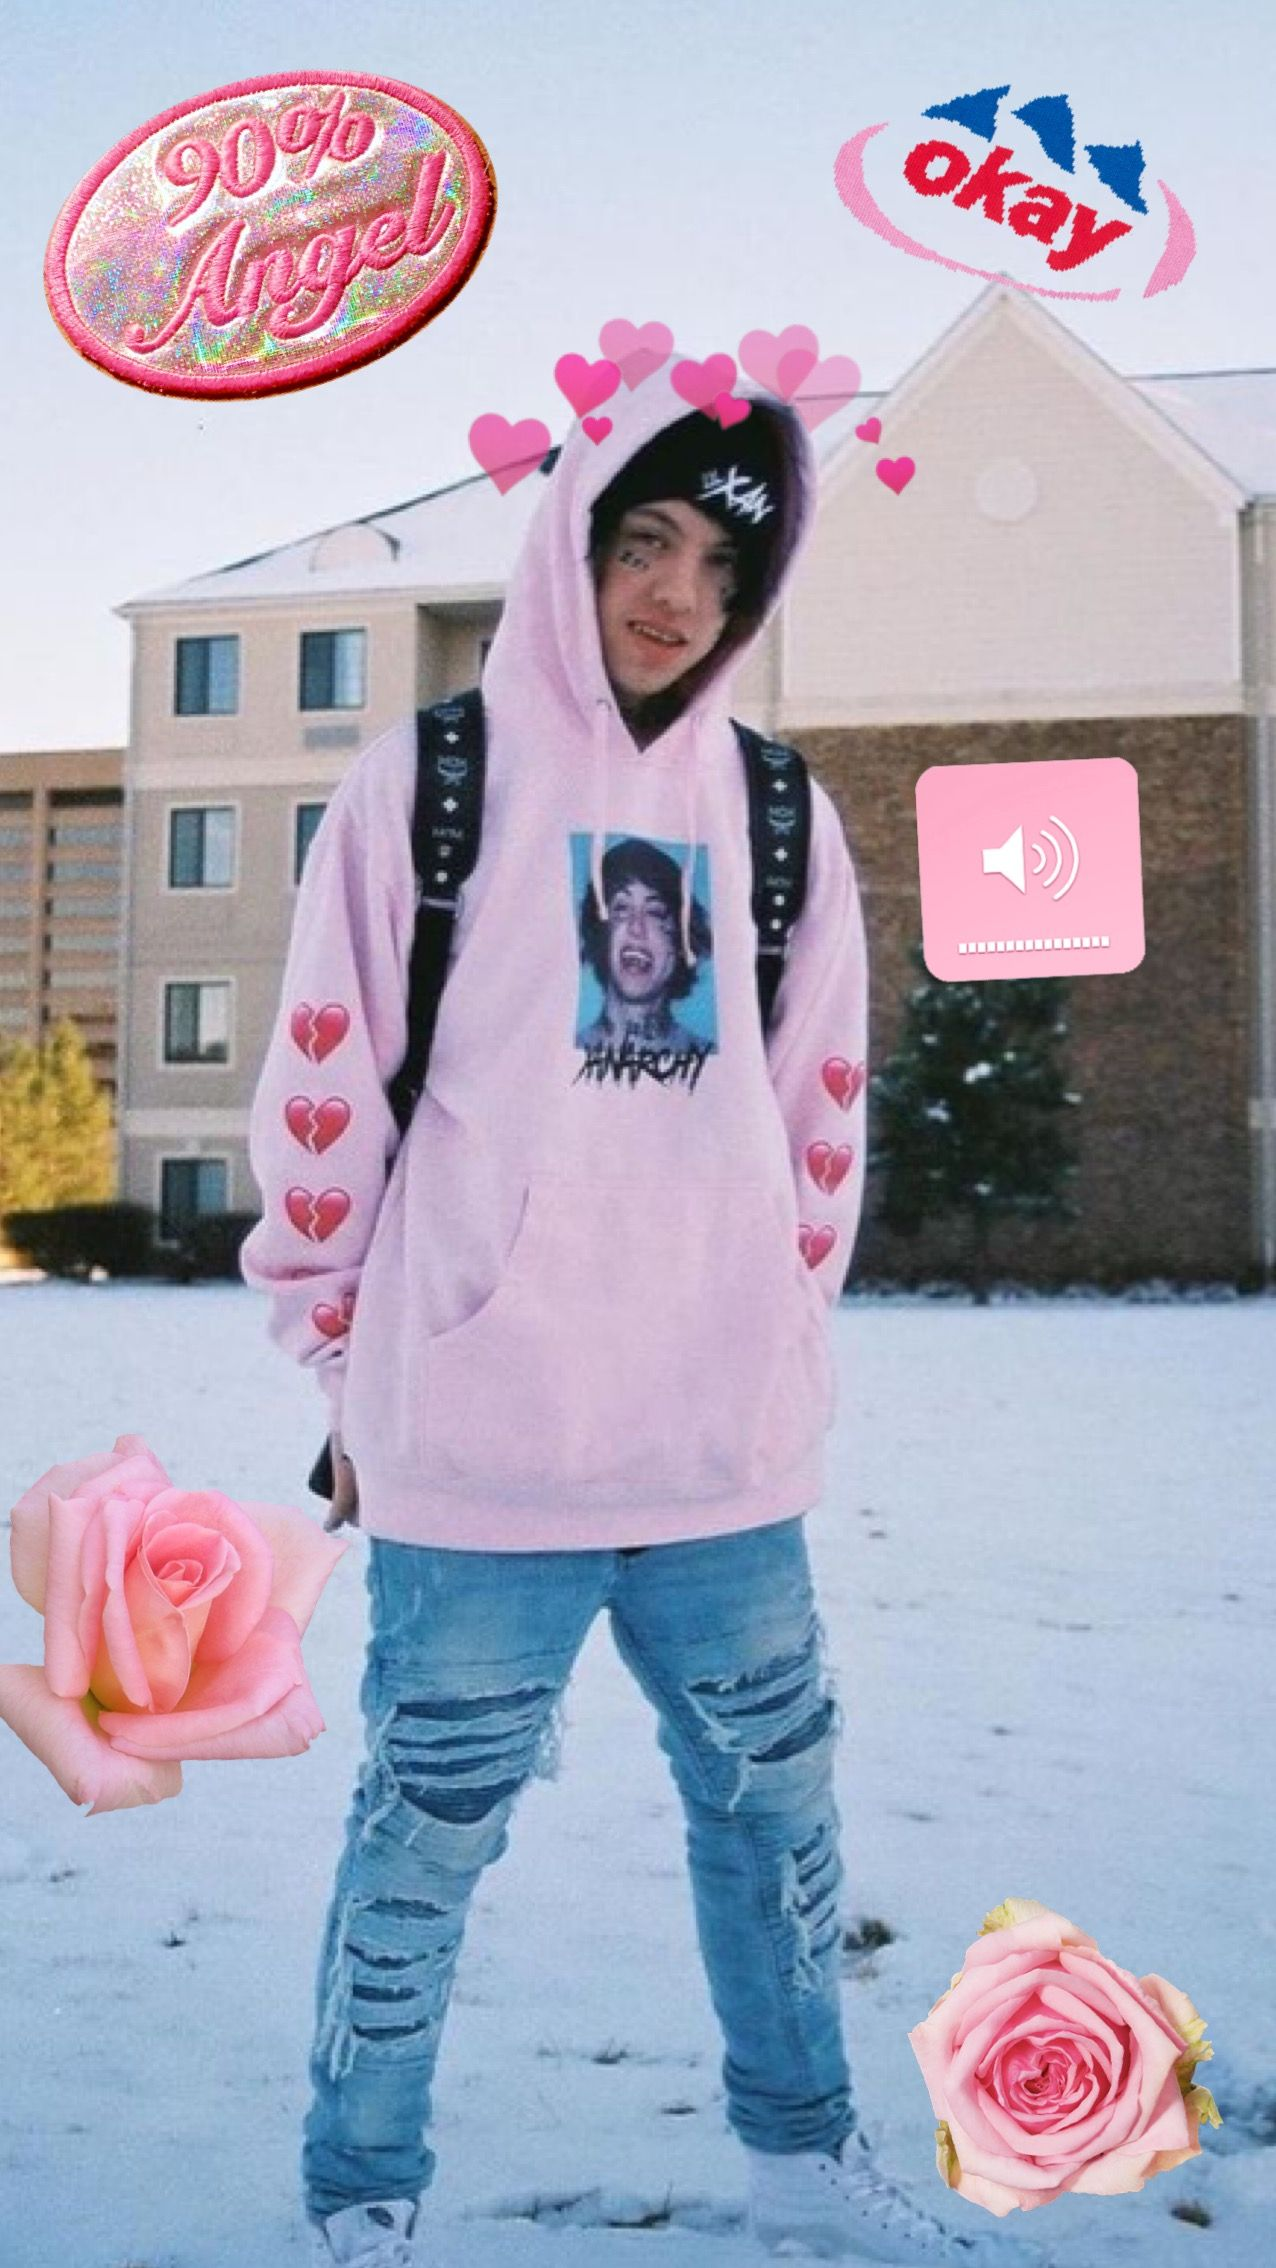 Pin By Karlize Zamorano On Lil Xan Pinterest Rapper Lil Pump